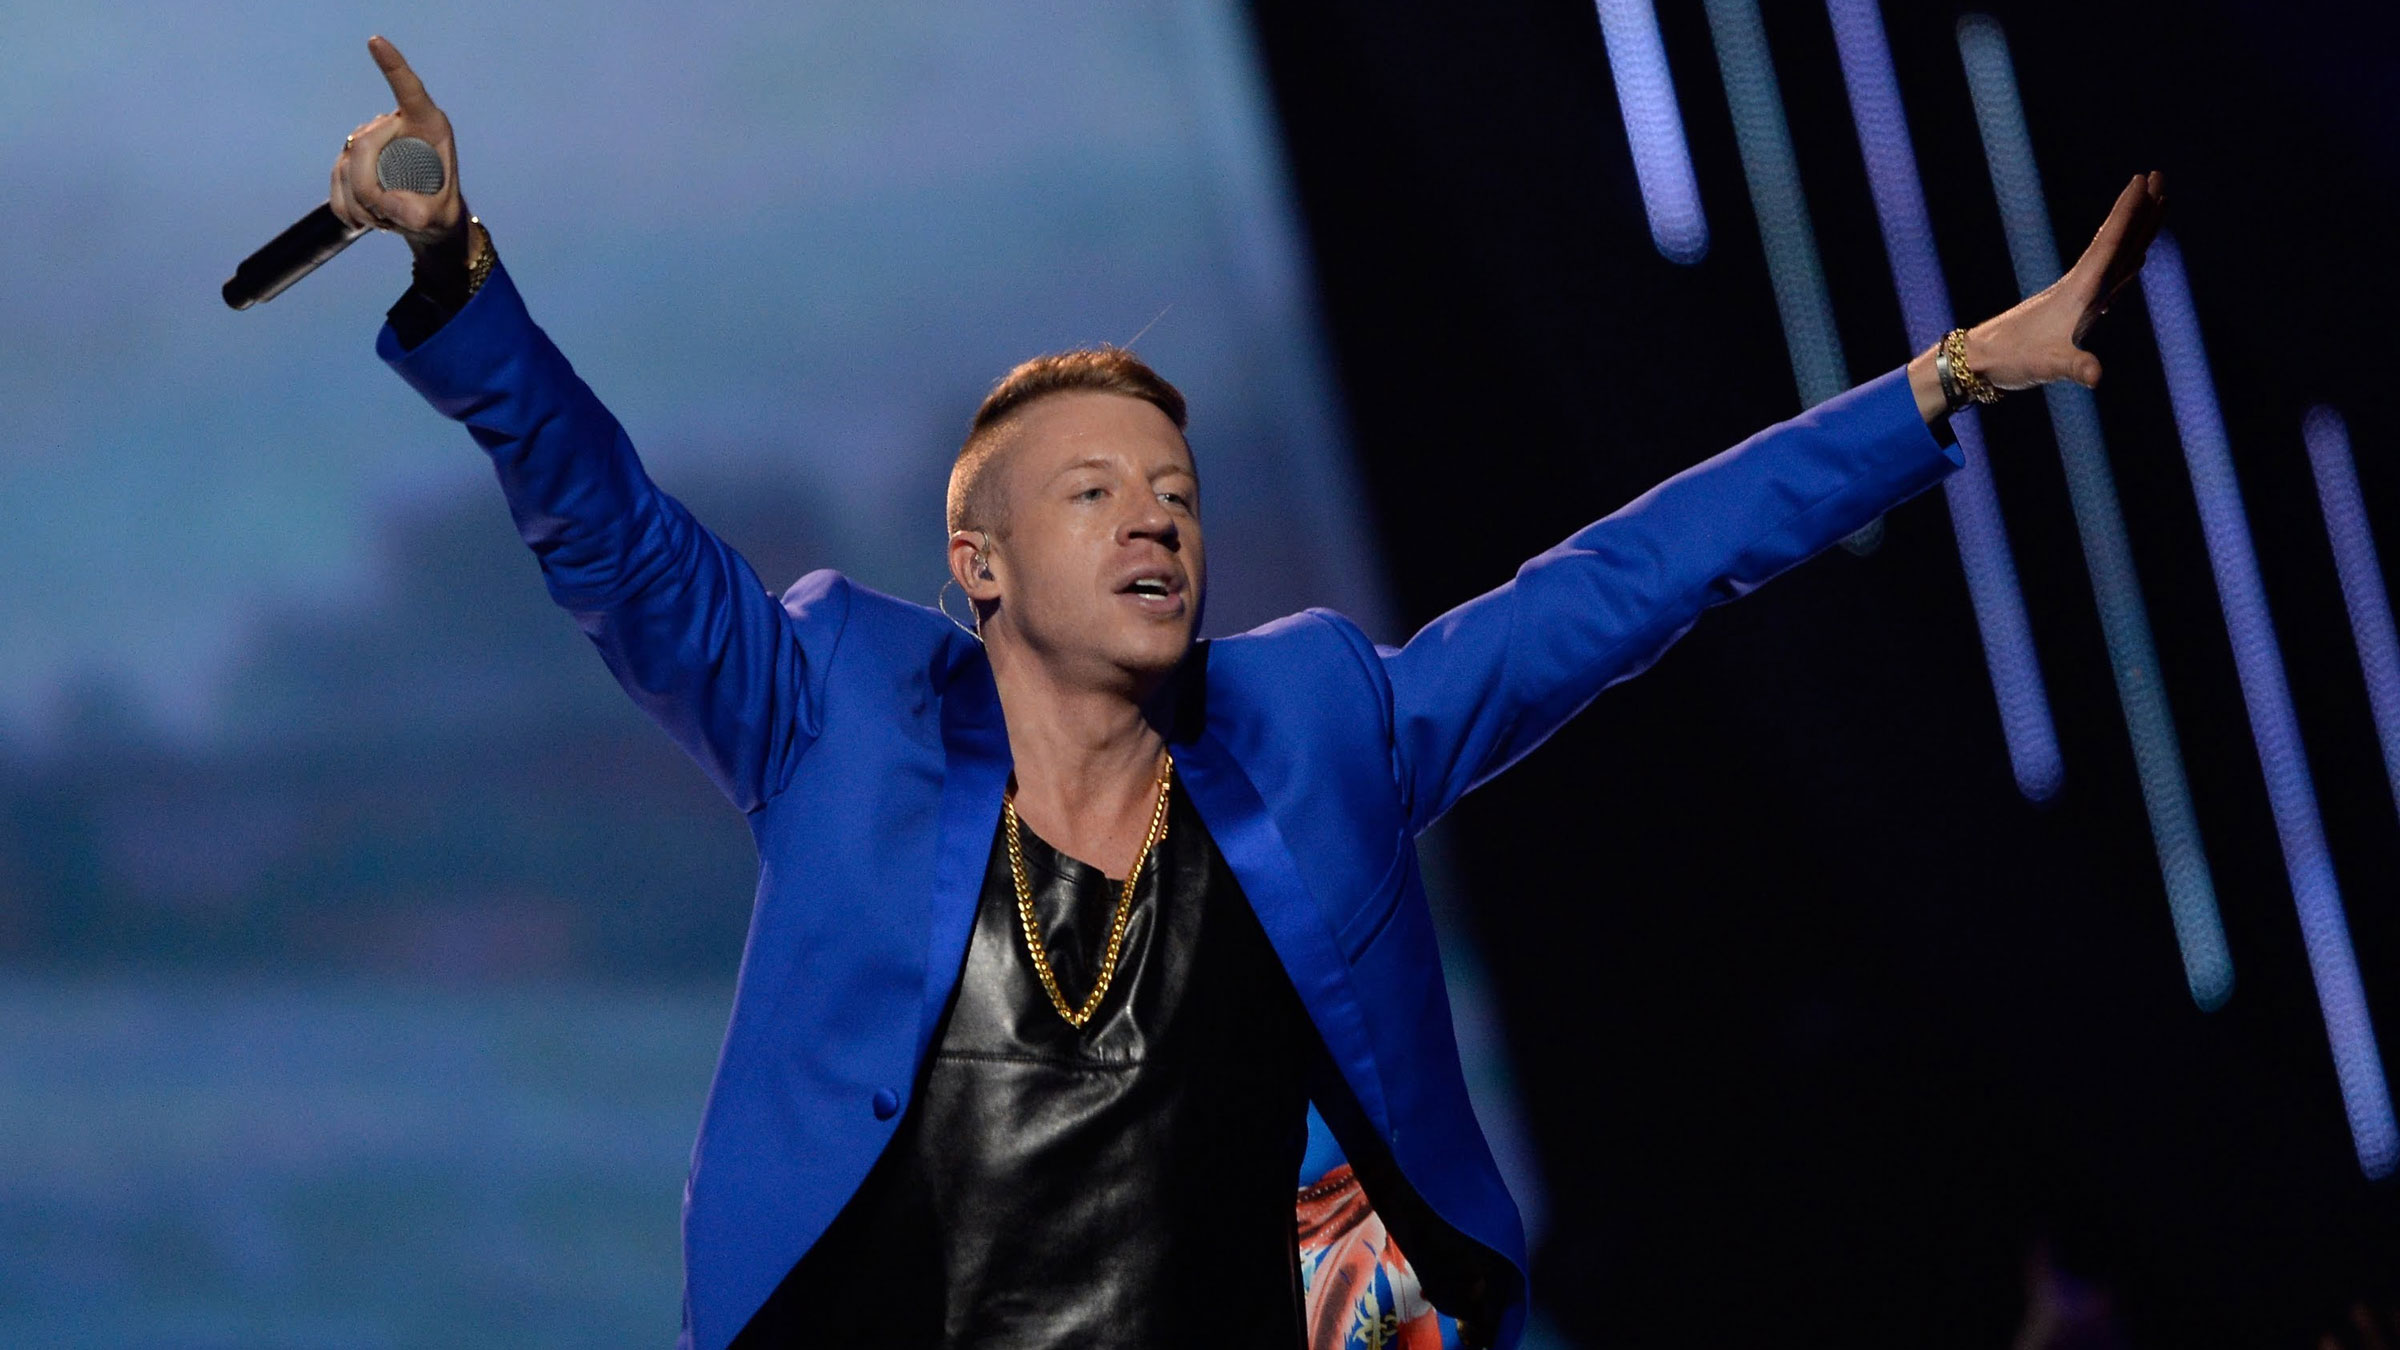 Macklemore home